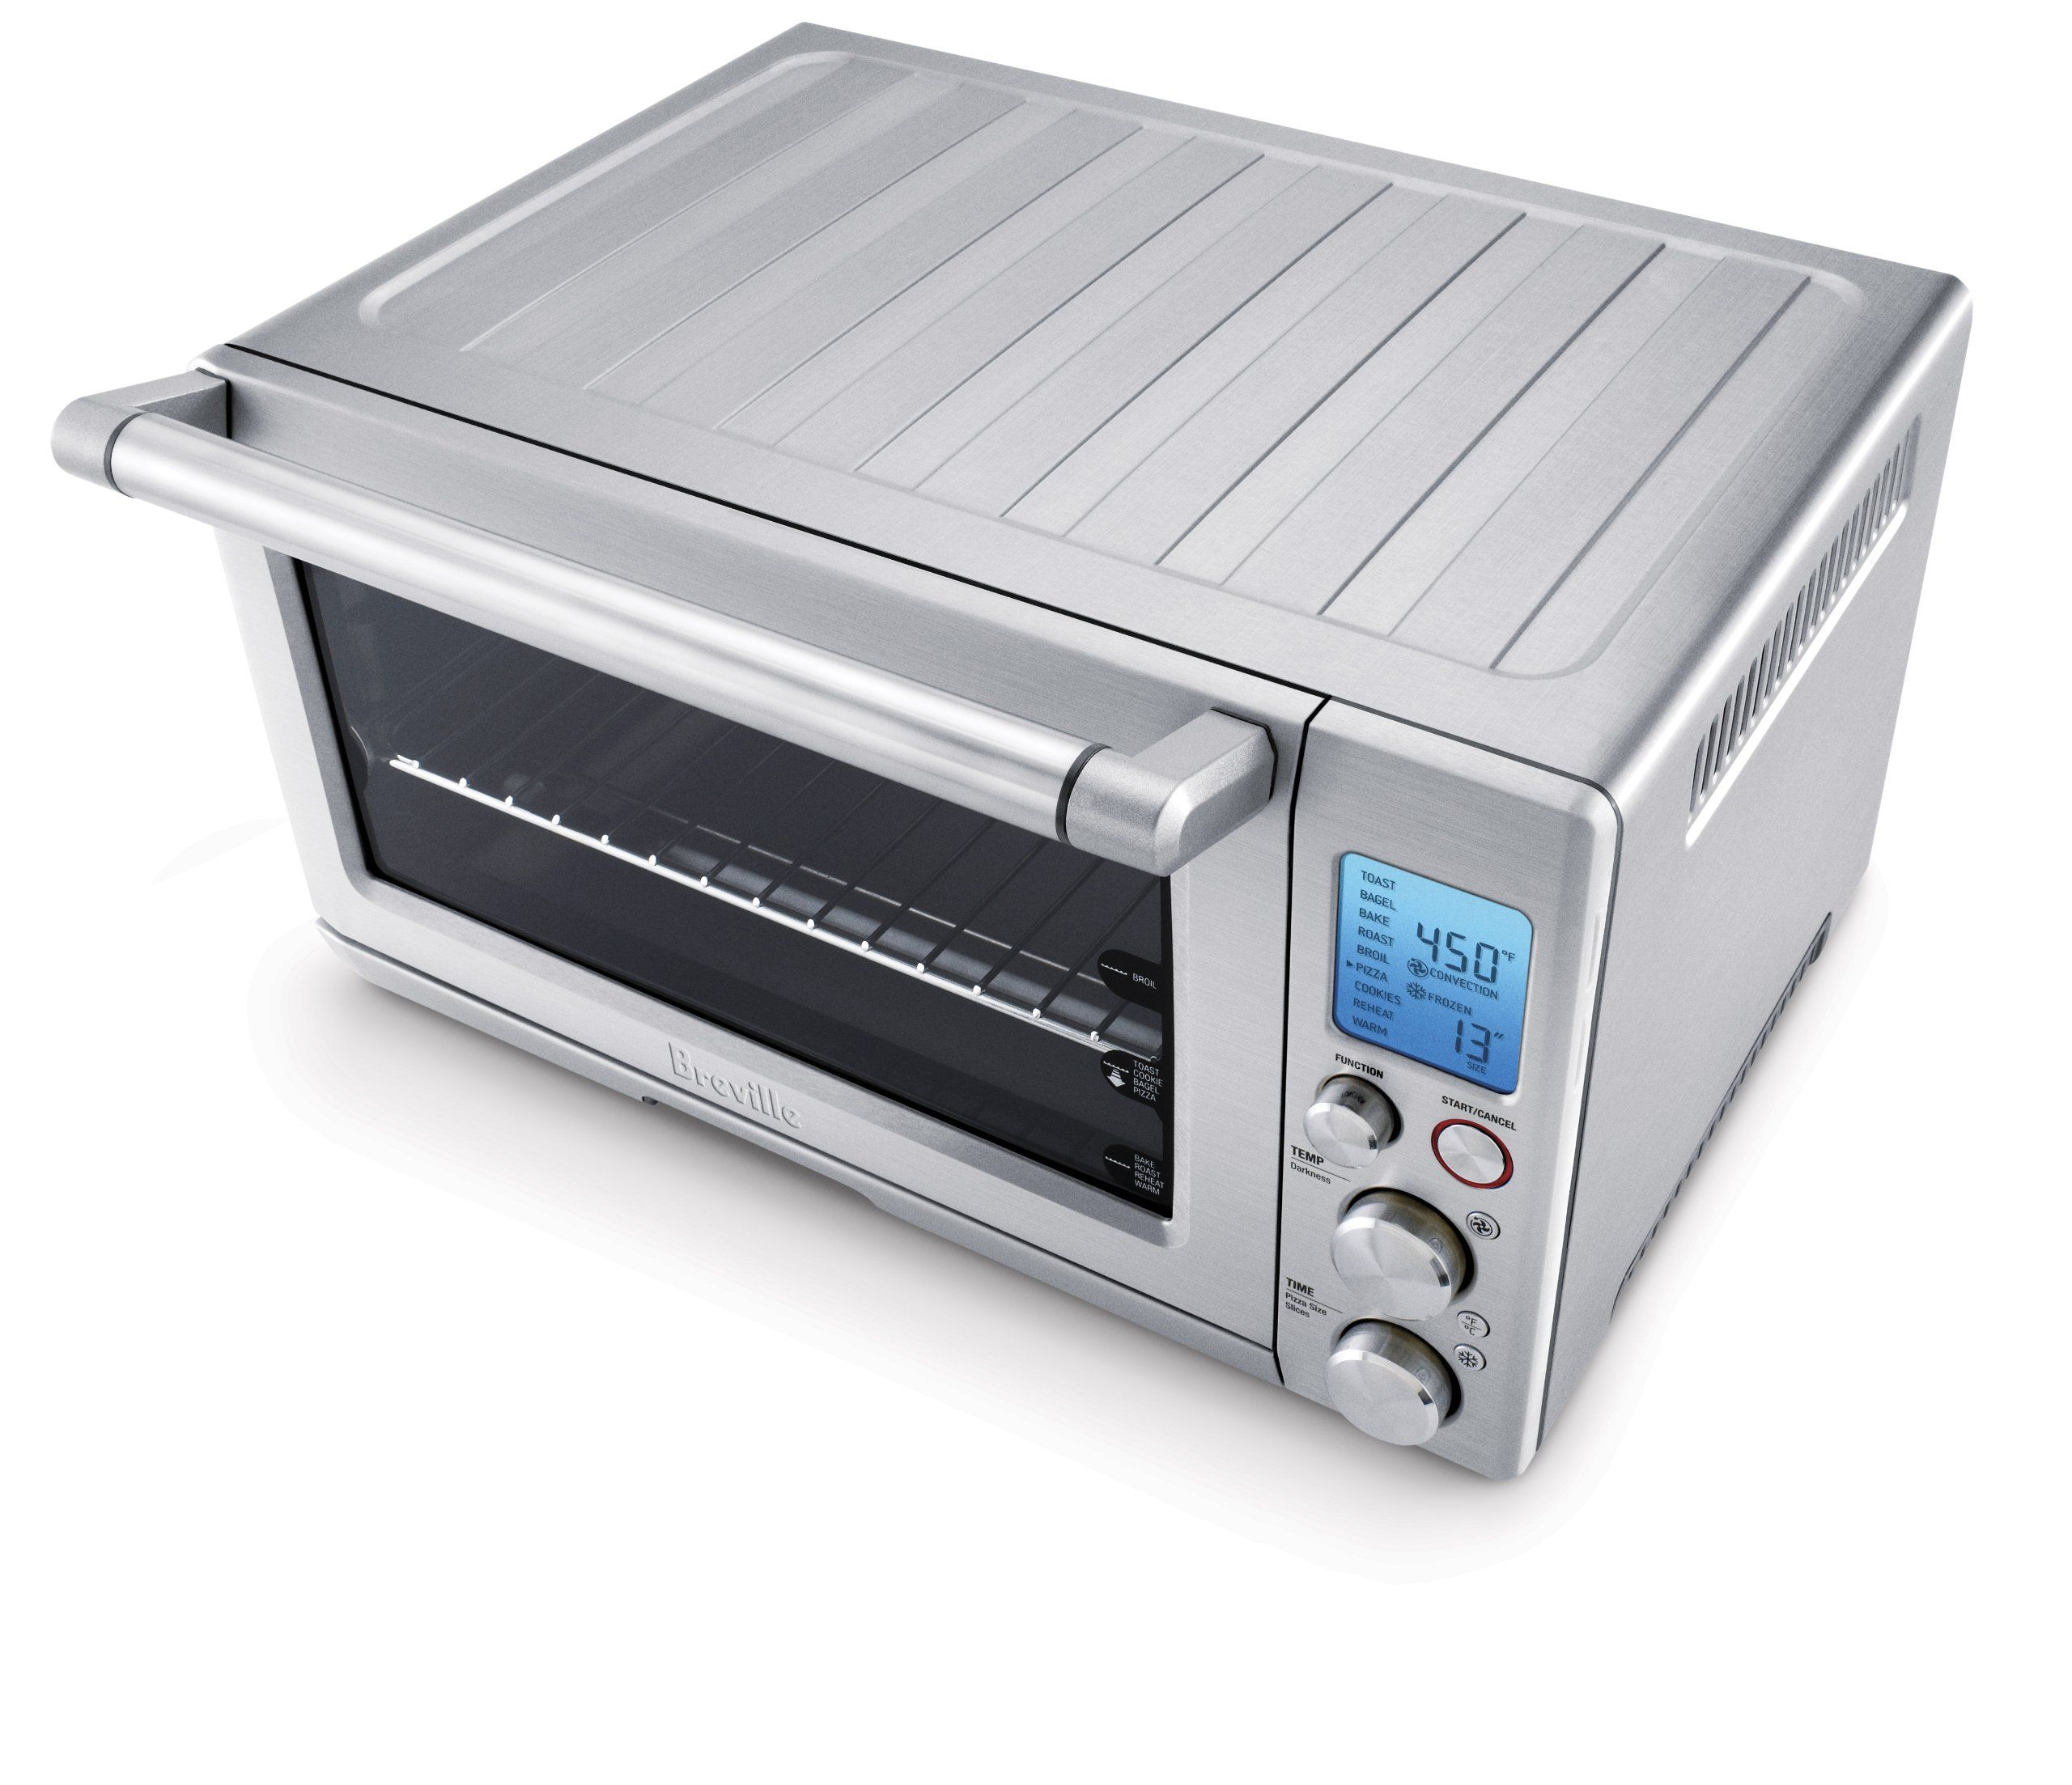 cuisinart convection kitchens and everything fryer light by breville air oven toaster toa w